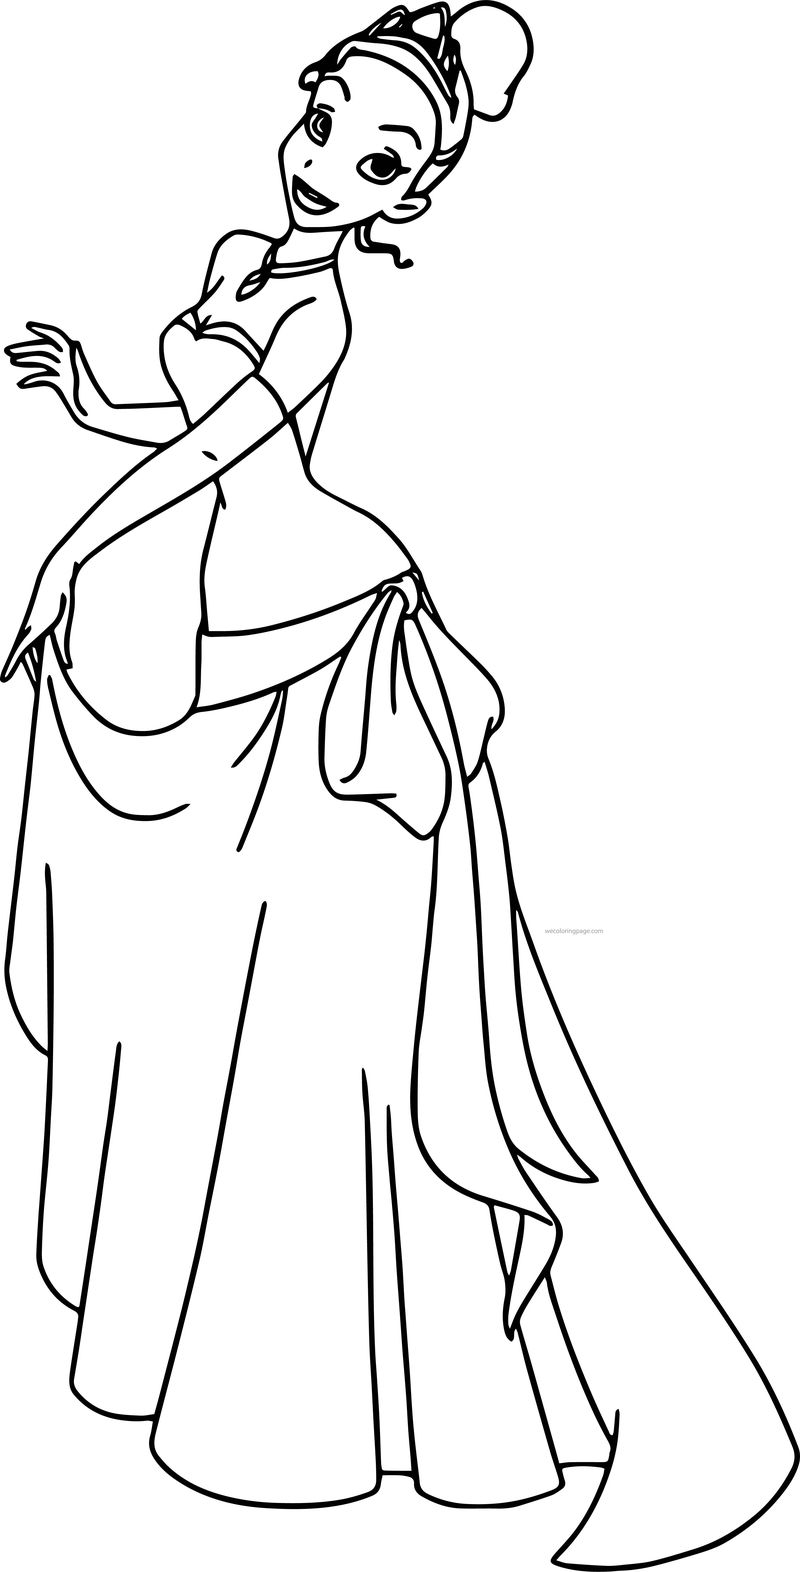 Disney The Princess And The Frog Pose Coloring Page